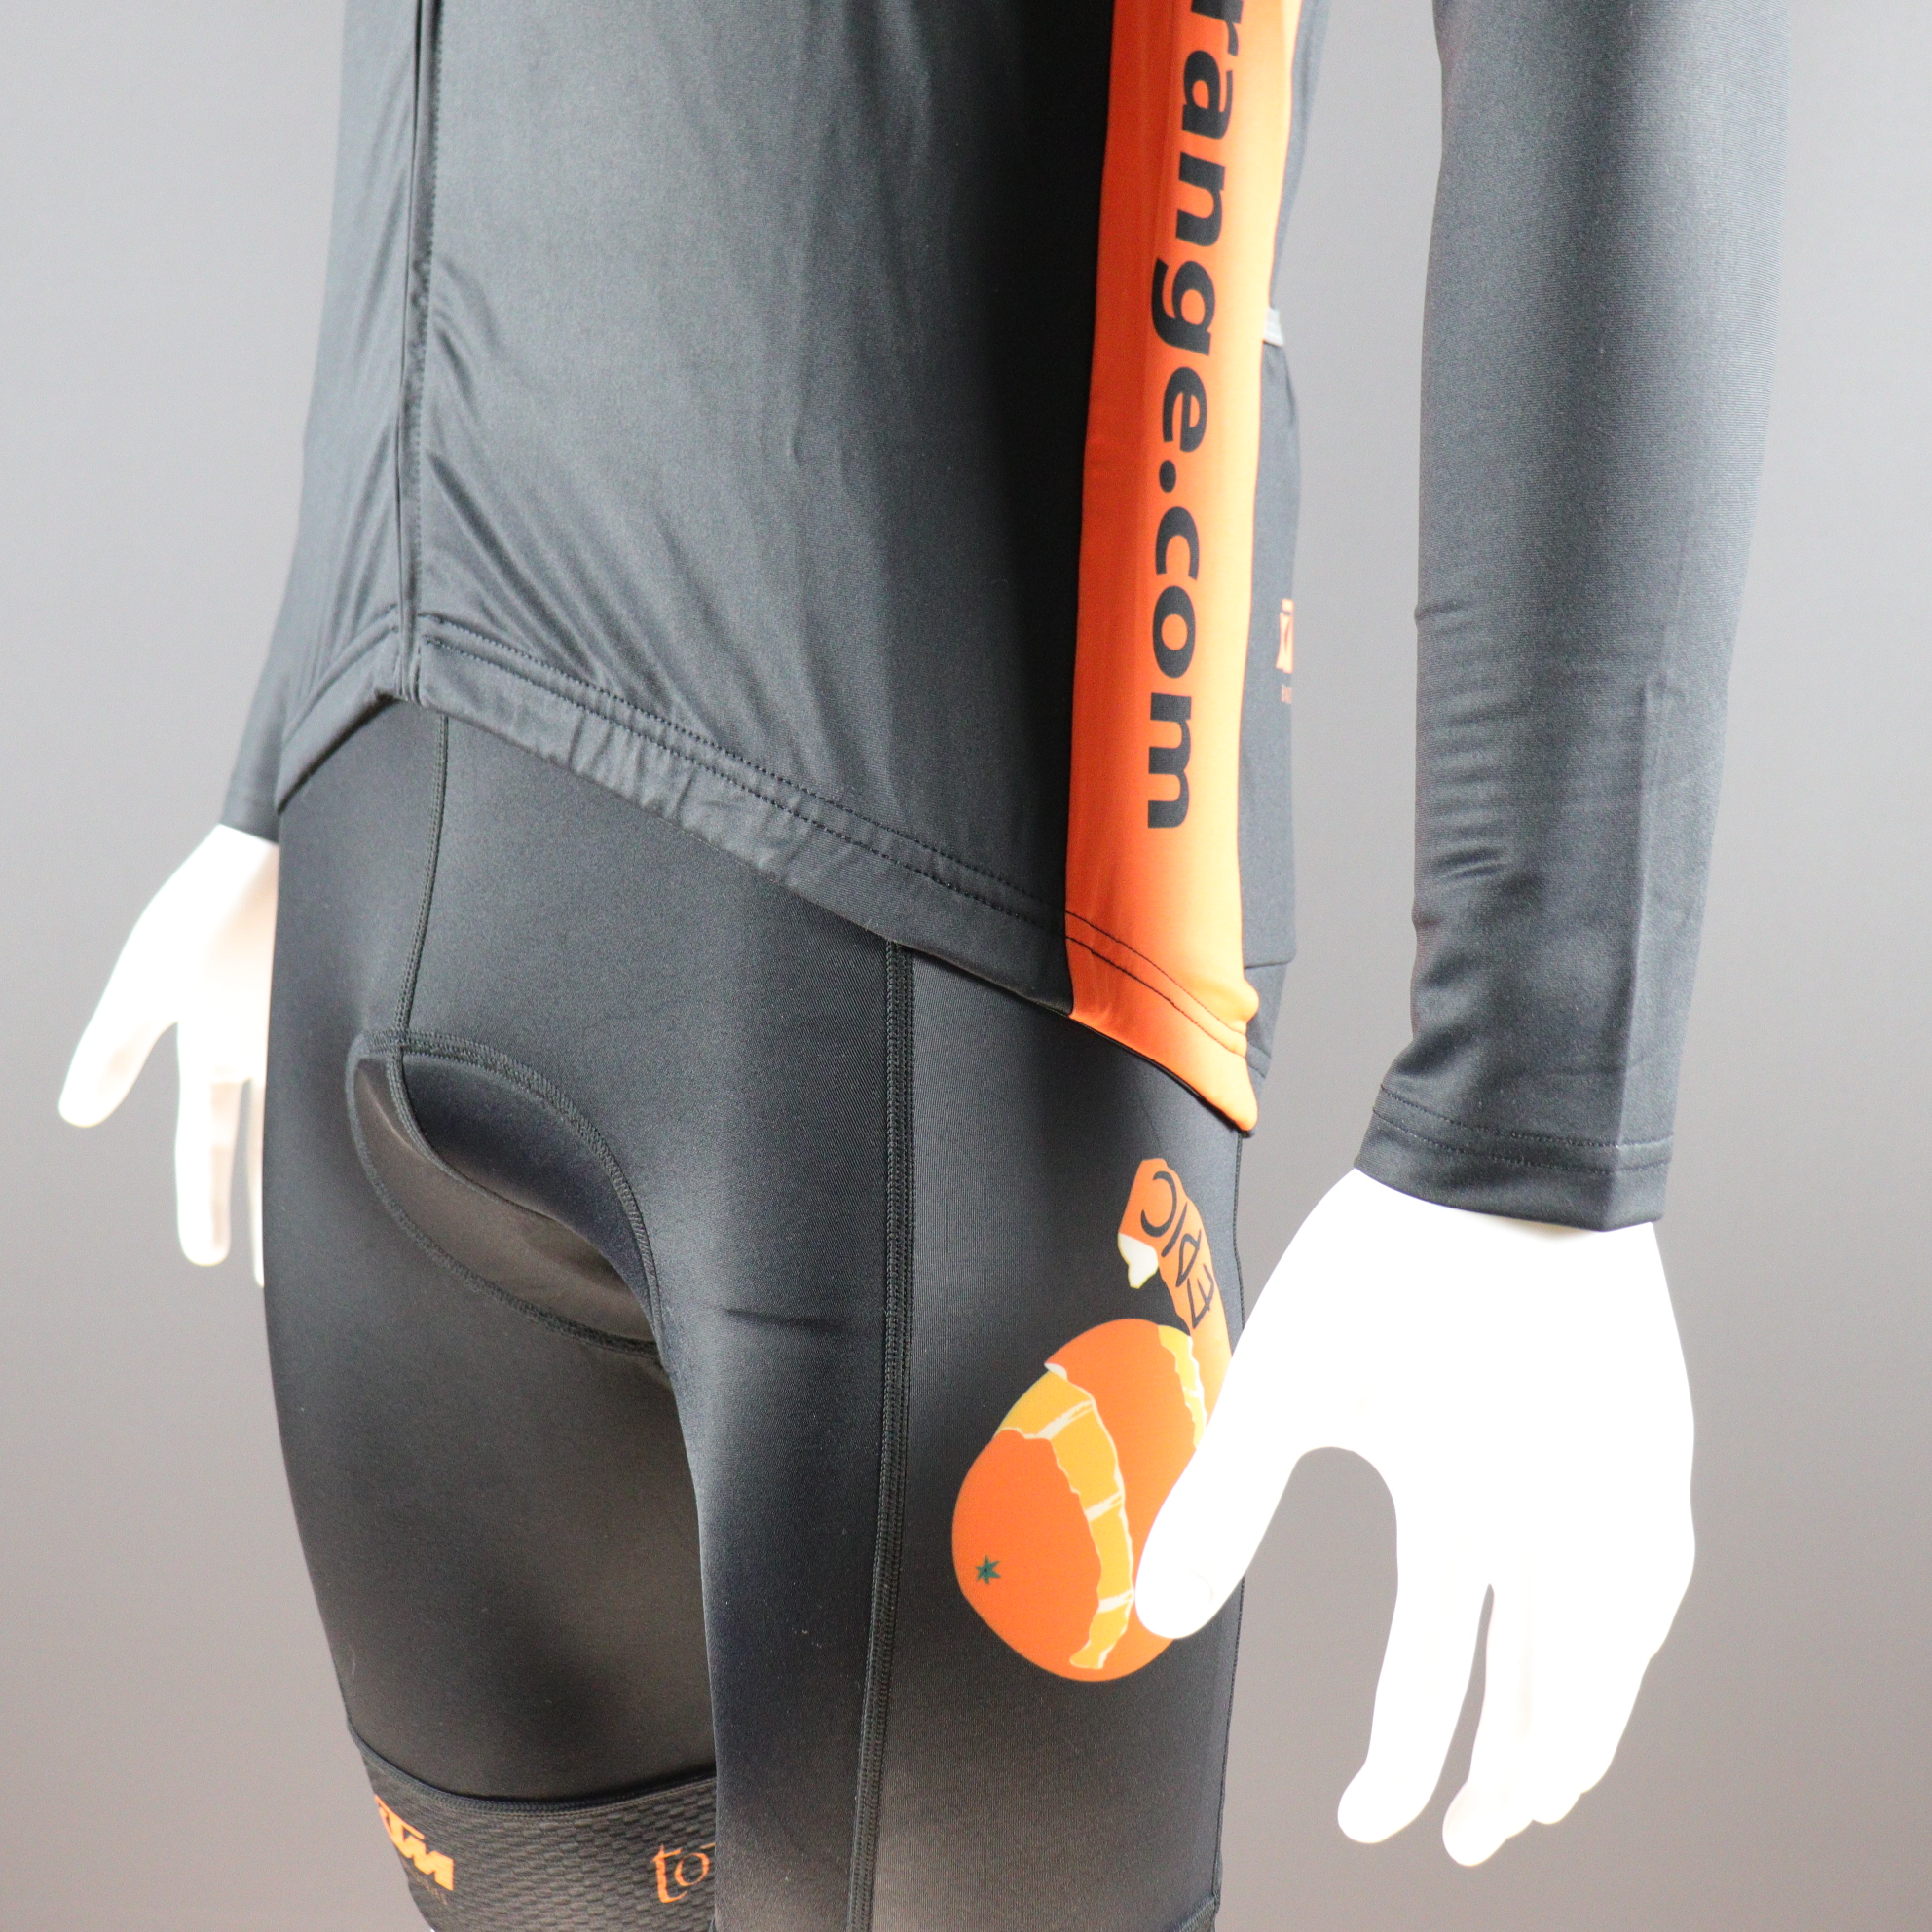 Thermal Cycle Jackets - Comfort Waist